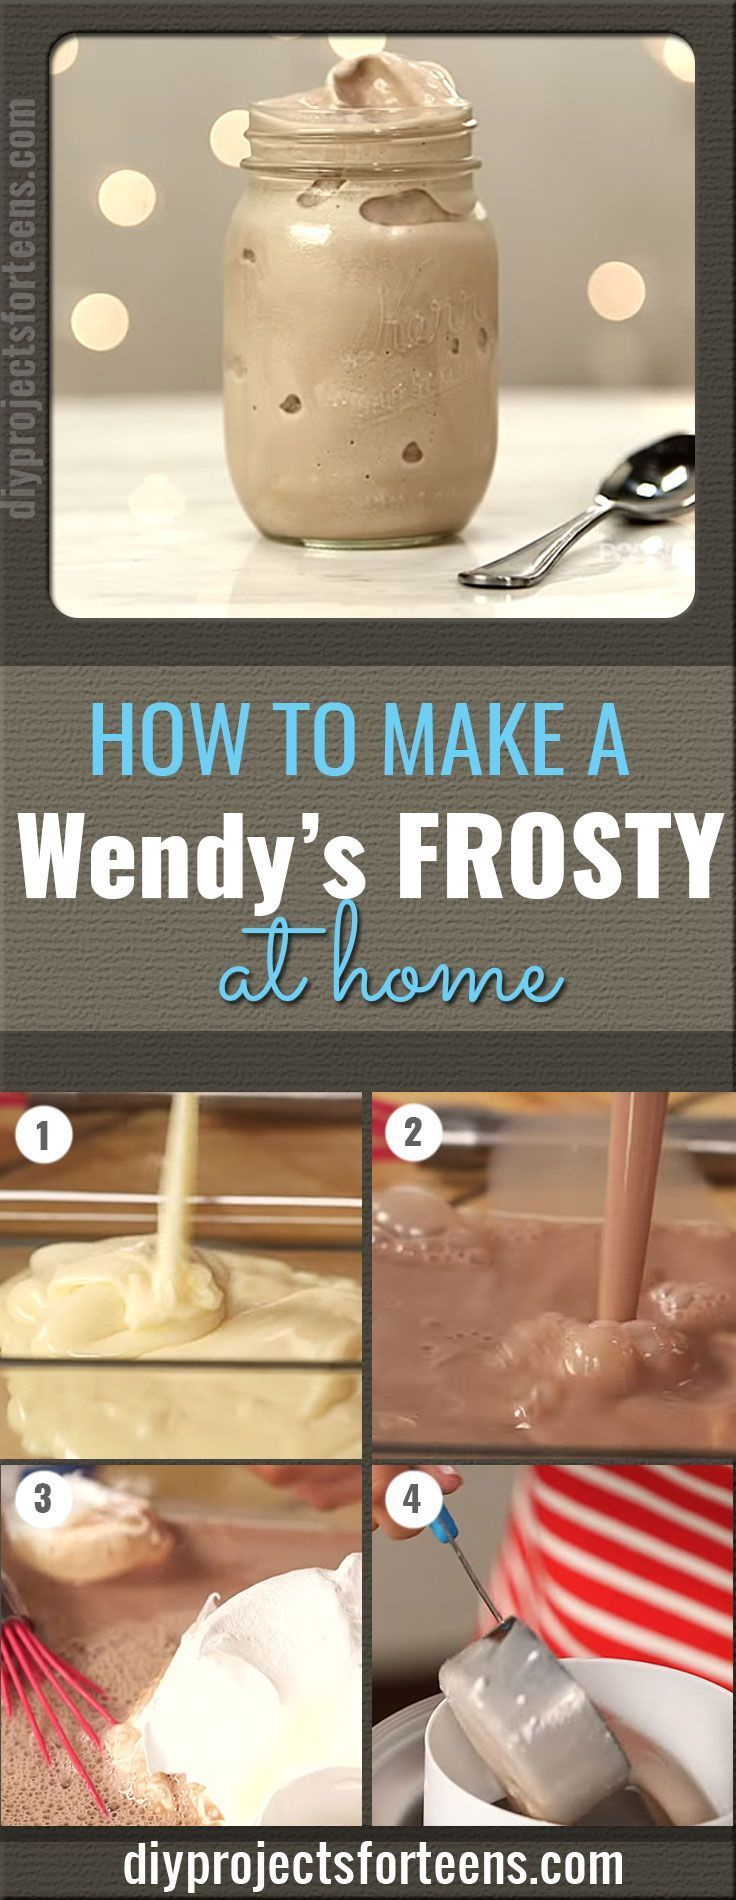 how to make easy cool things at home